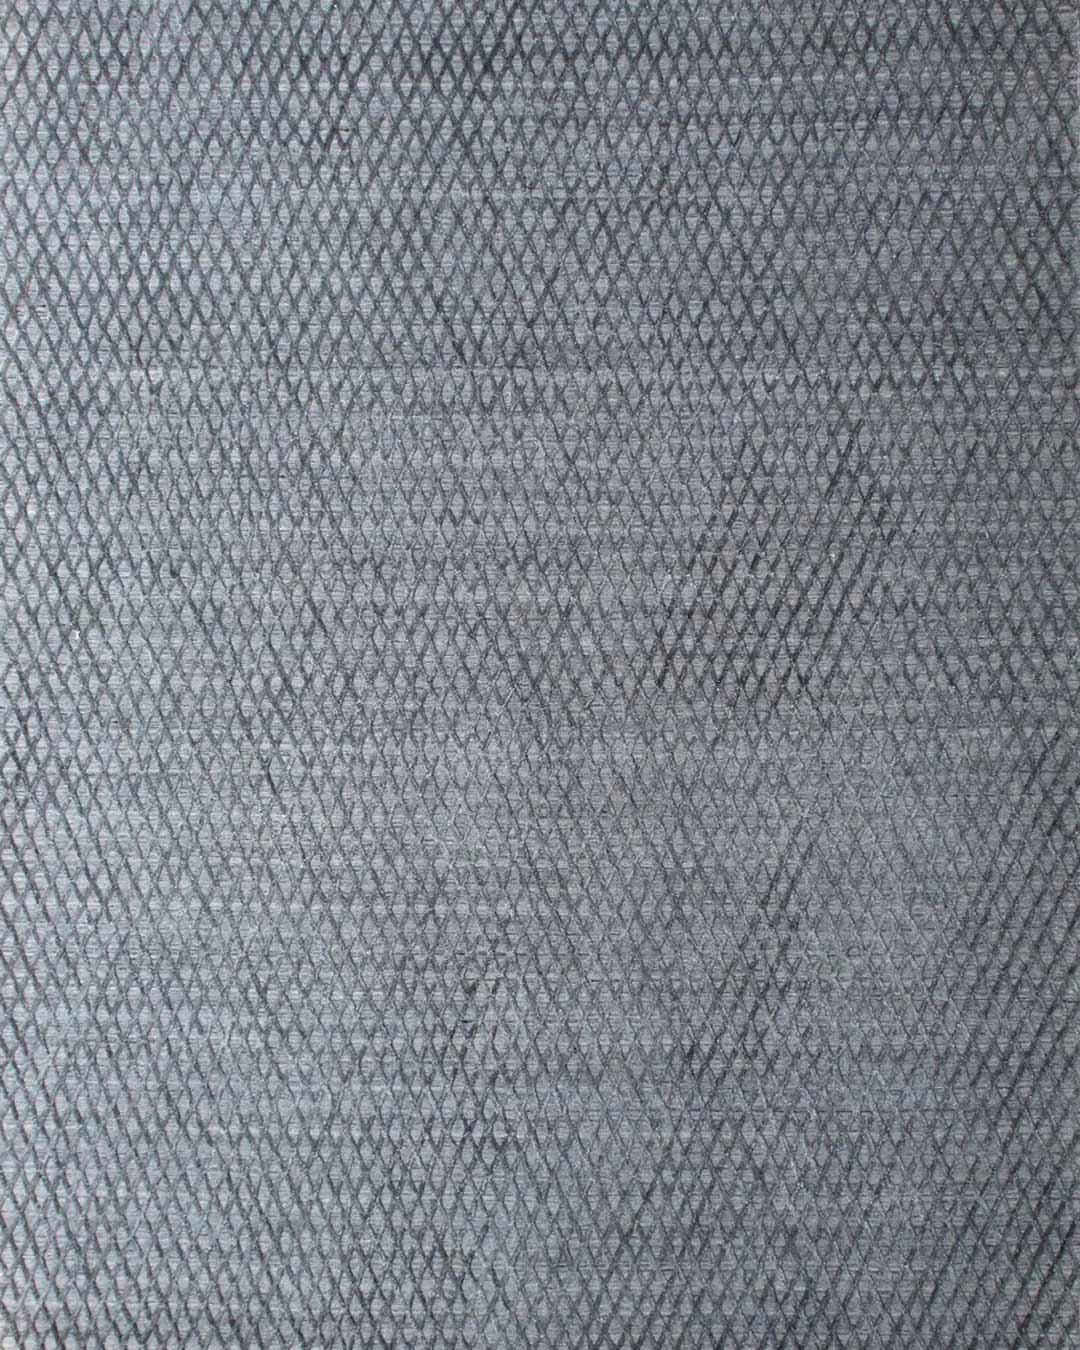 Overhead image of geometric Marley rug in silver grey colour